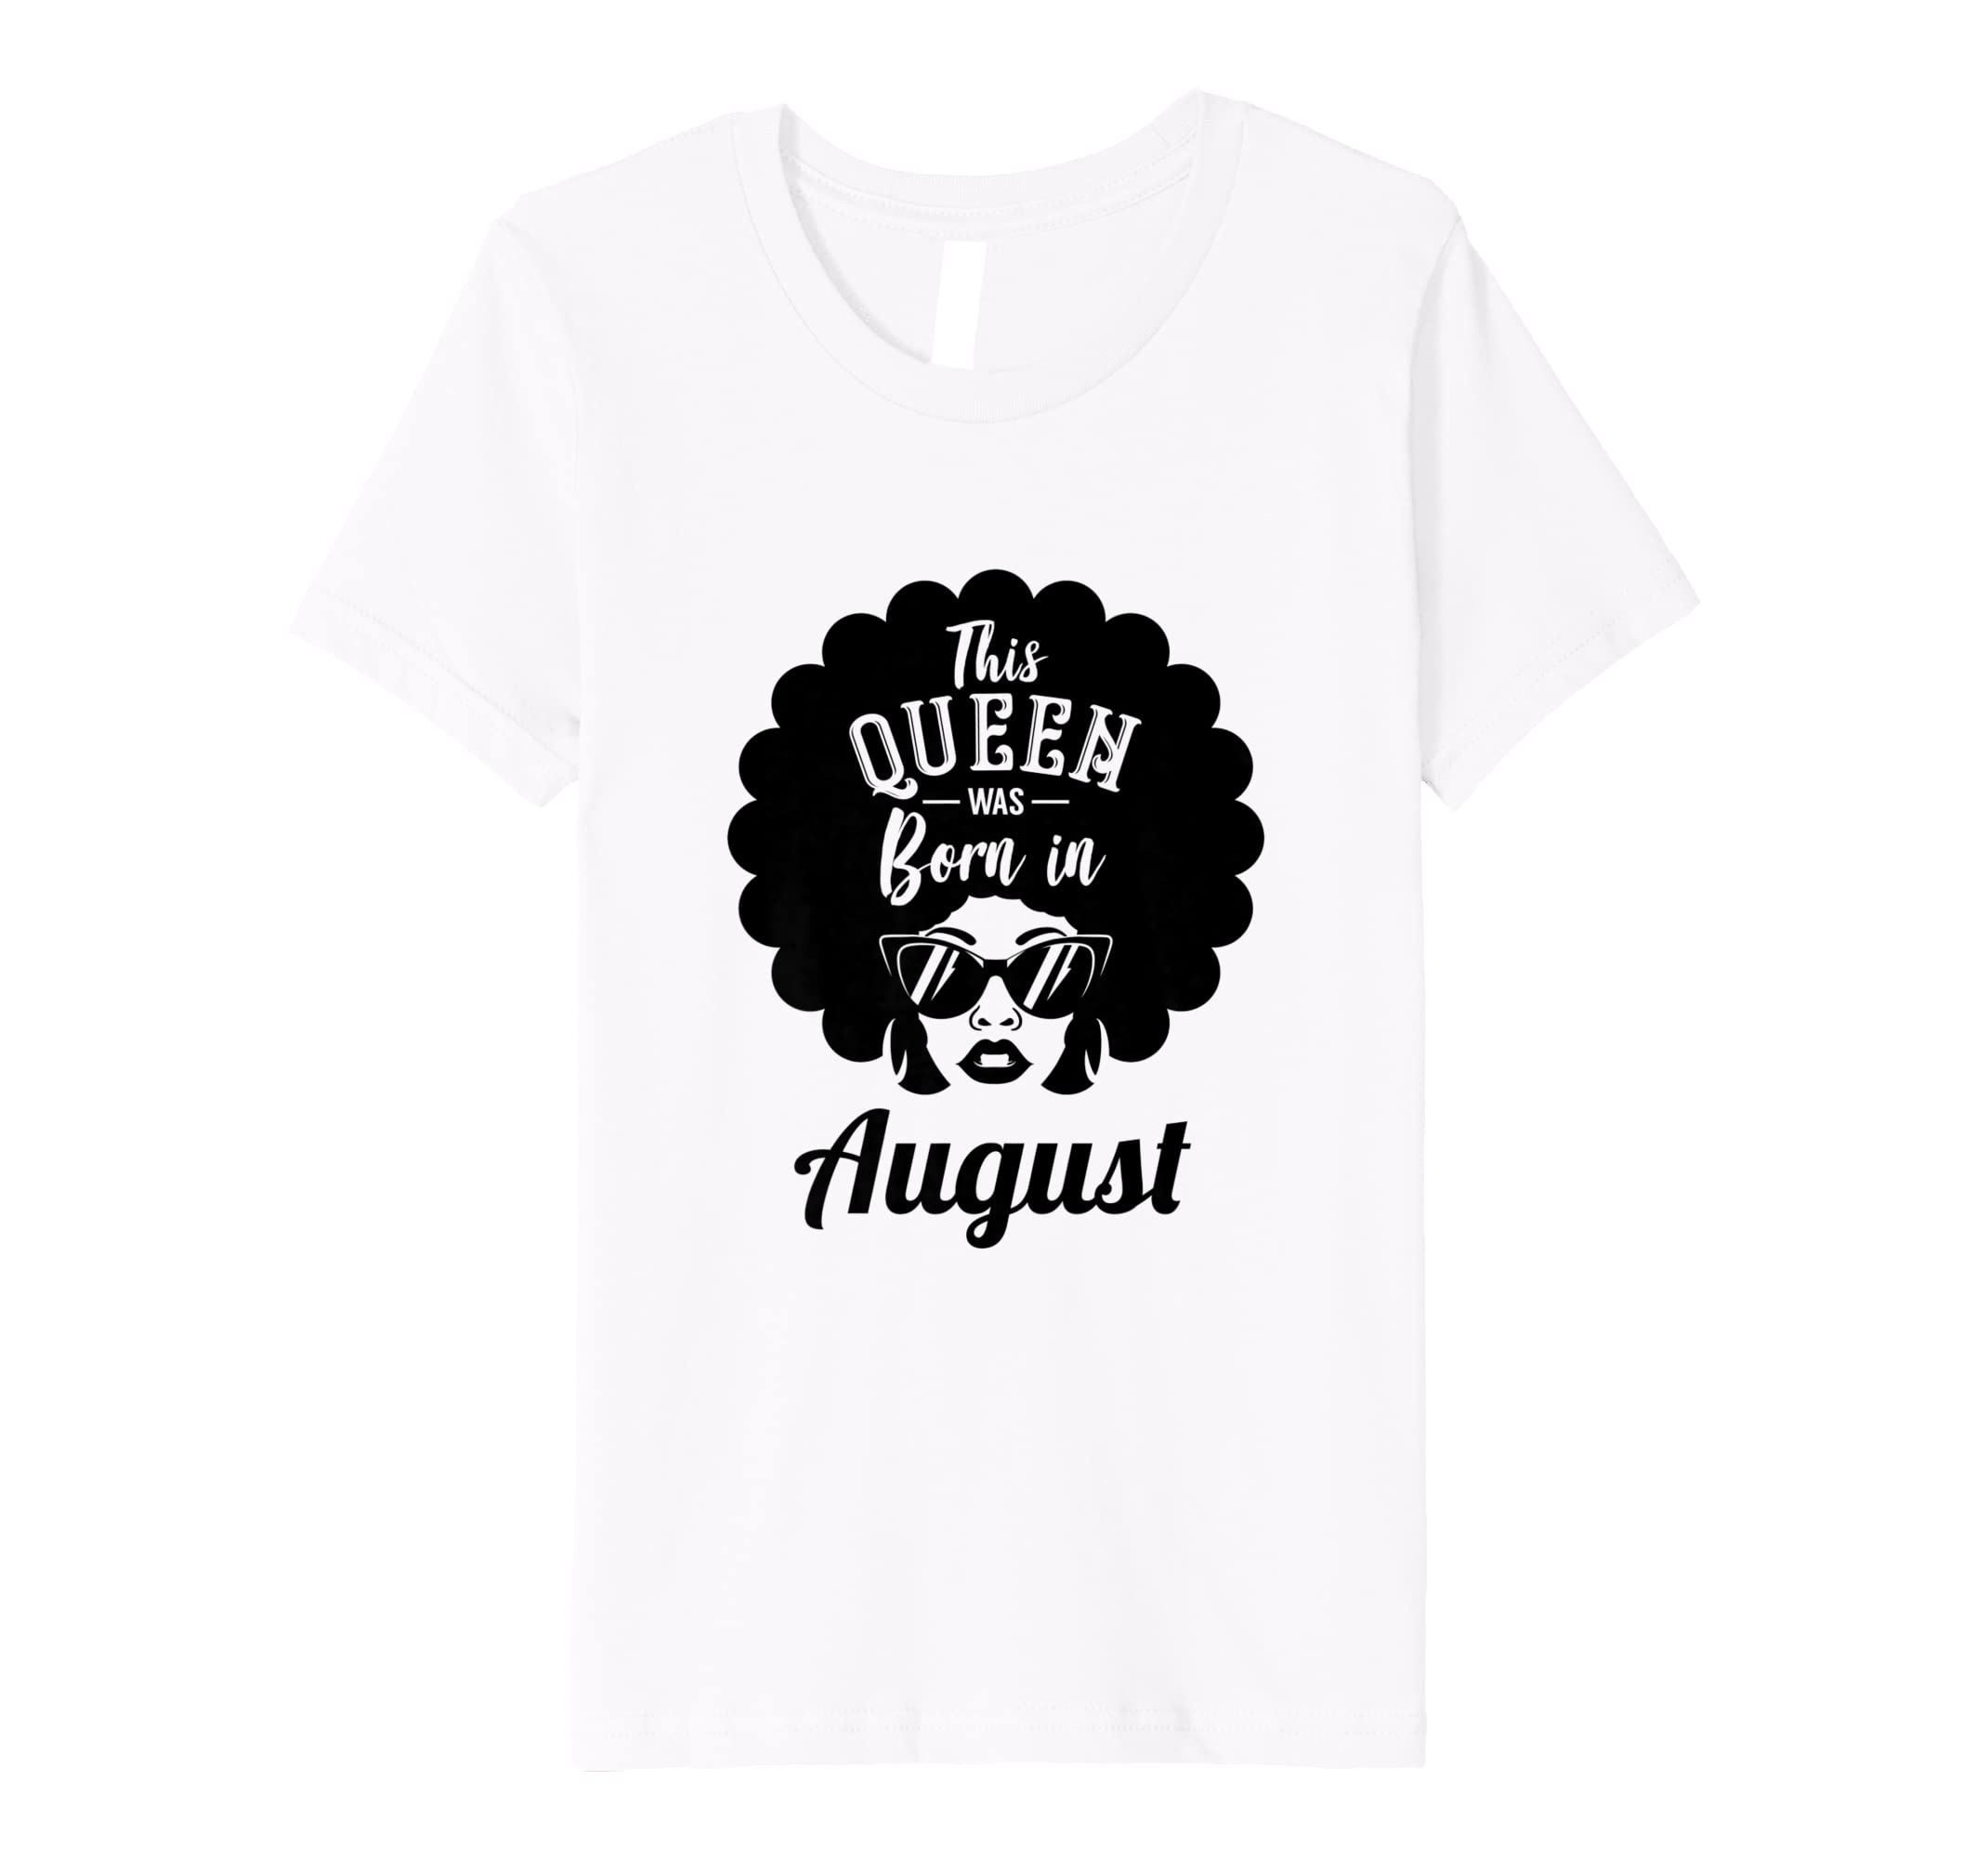 832eab76e Amazon.com: This Queen Was Born in August Shirt | Black Power Tee: Clothing